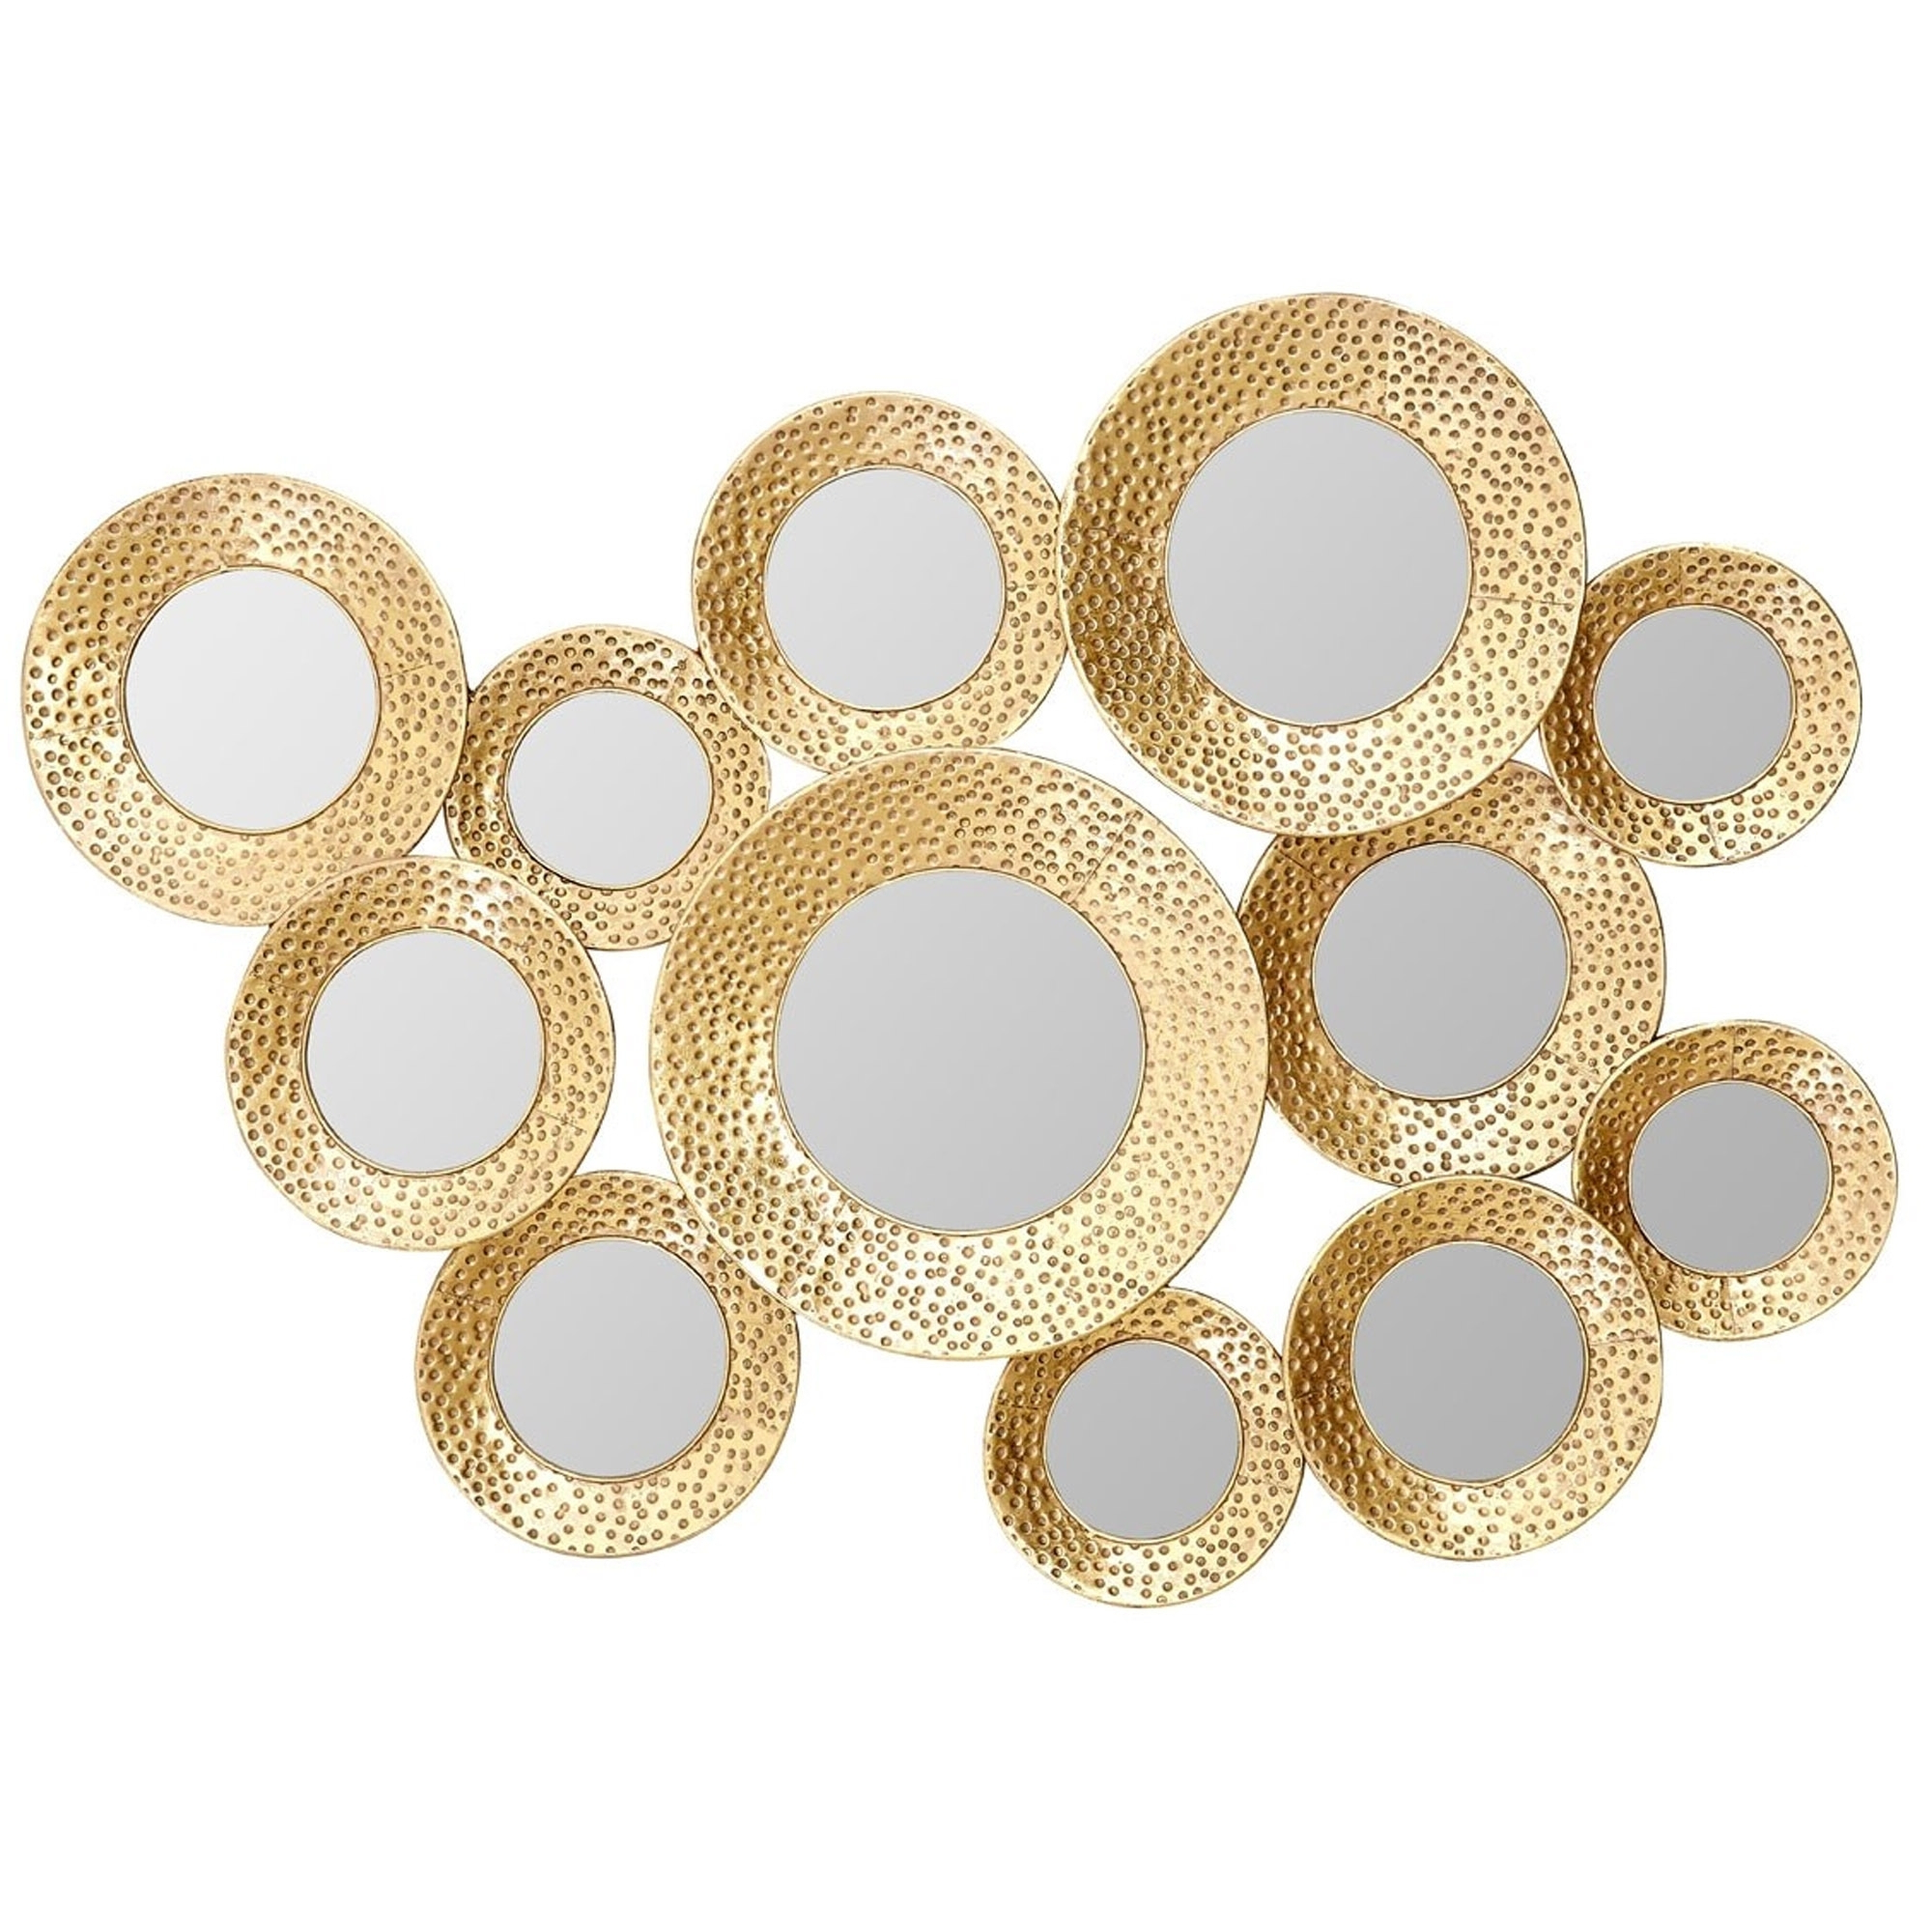 Gold Wall Mirrors Within Widely Used Marcia Multi Circle Wall Mirror – Gold (View 2 of 20)